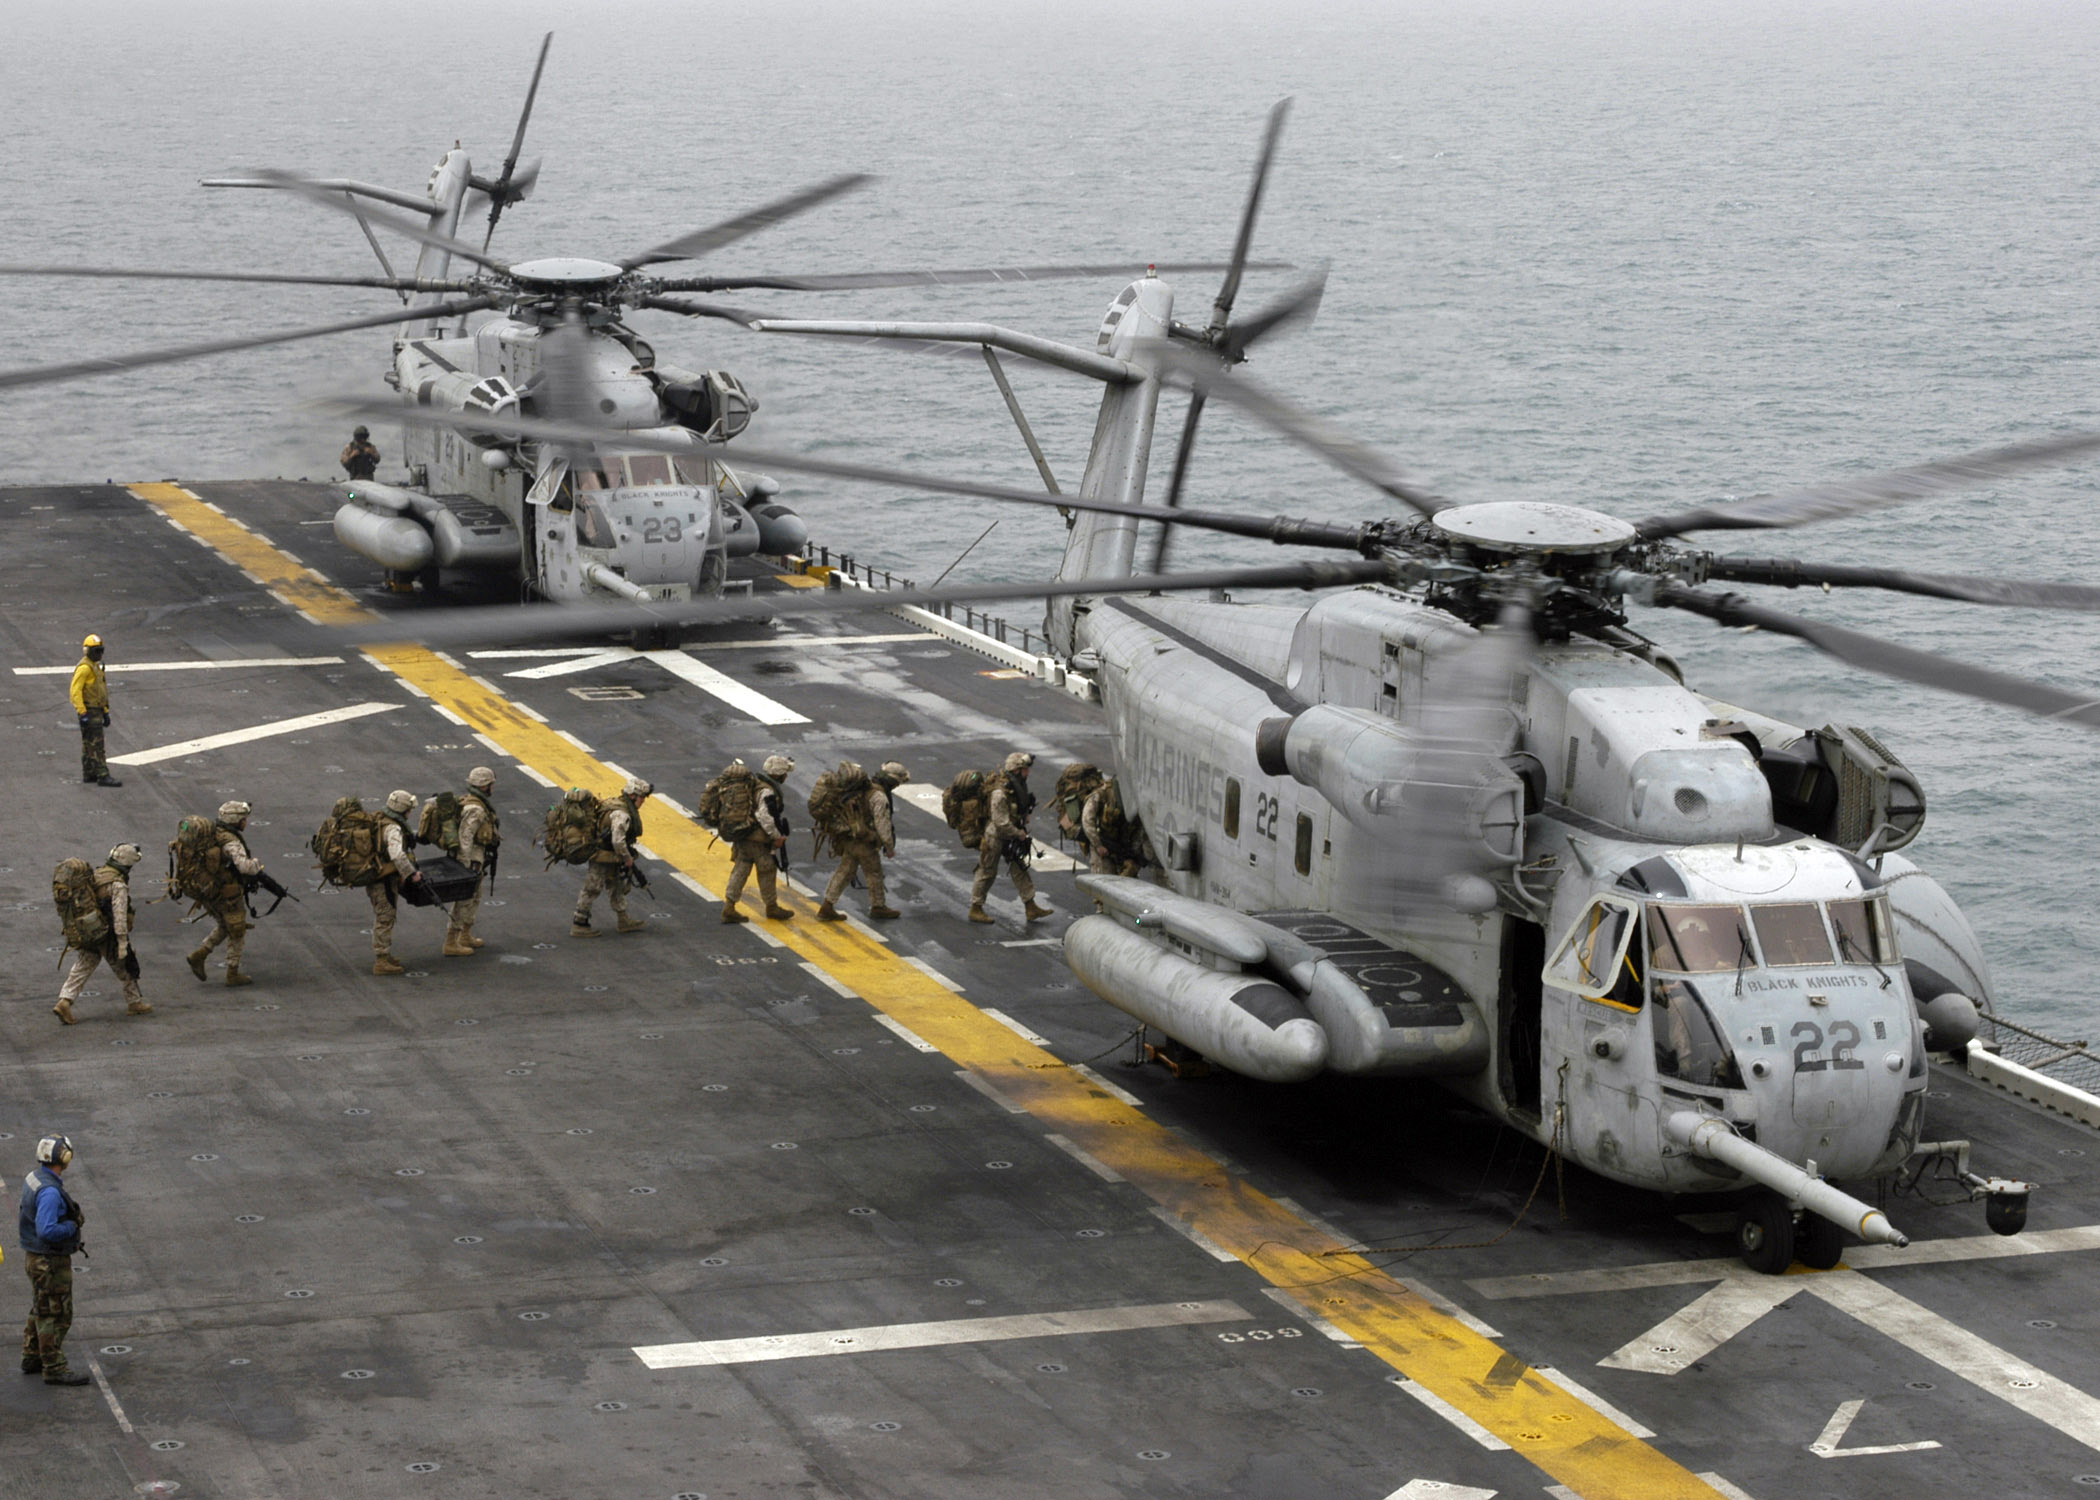 (denis simon) MH-53J Pave low 3 160626101744446745